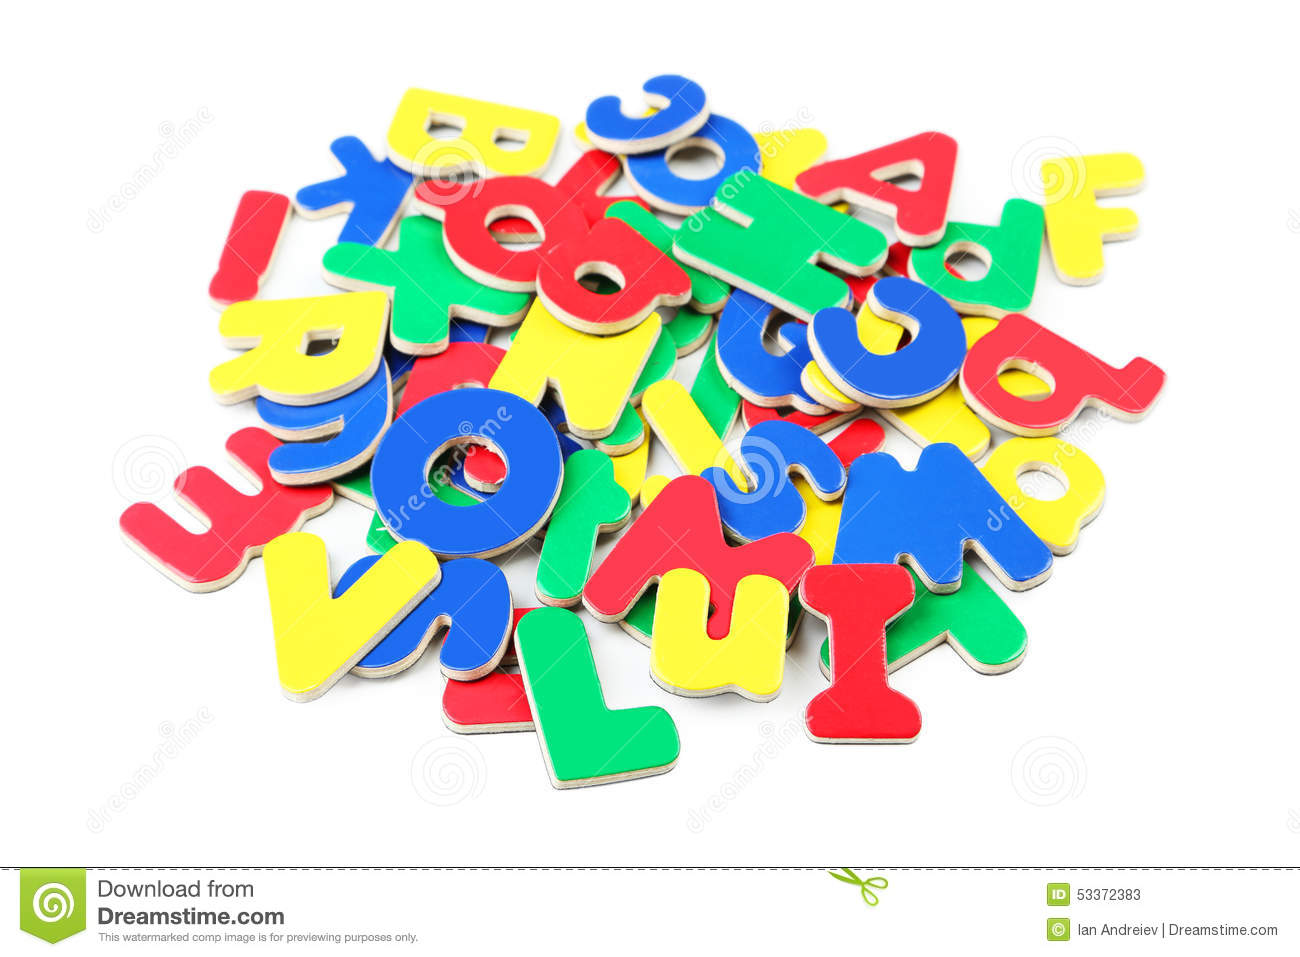 Magnetic letters stock photography cartoondealercom for White magnetic letters and numbers